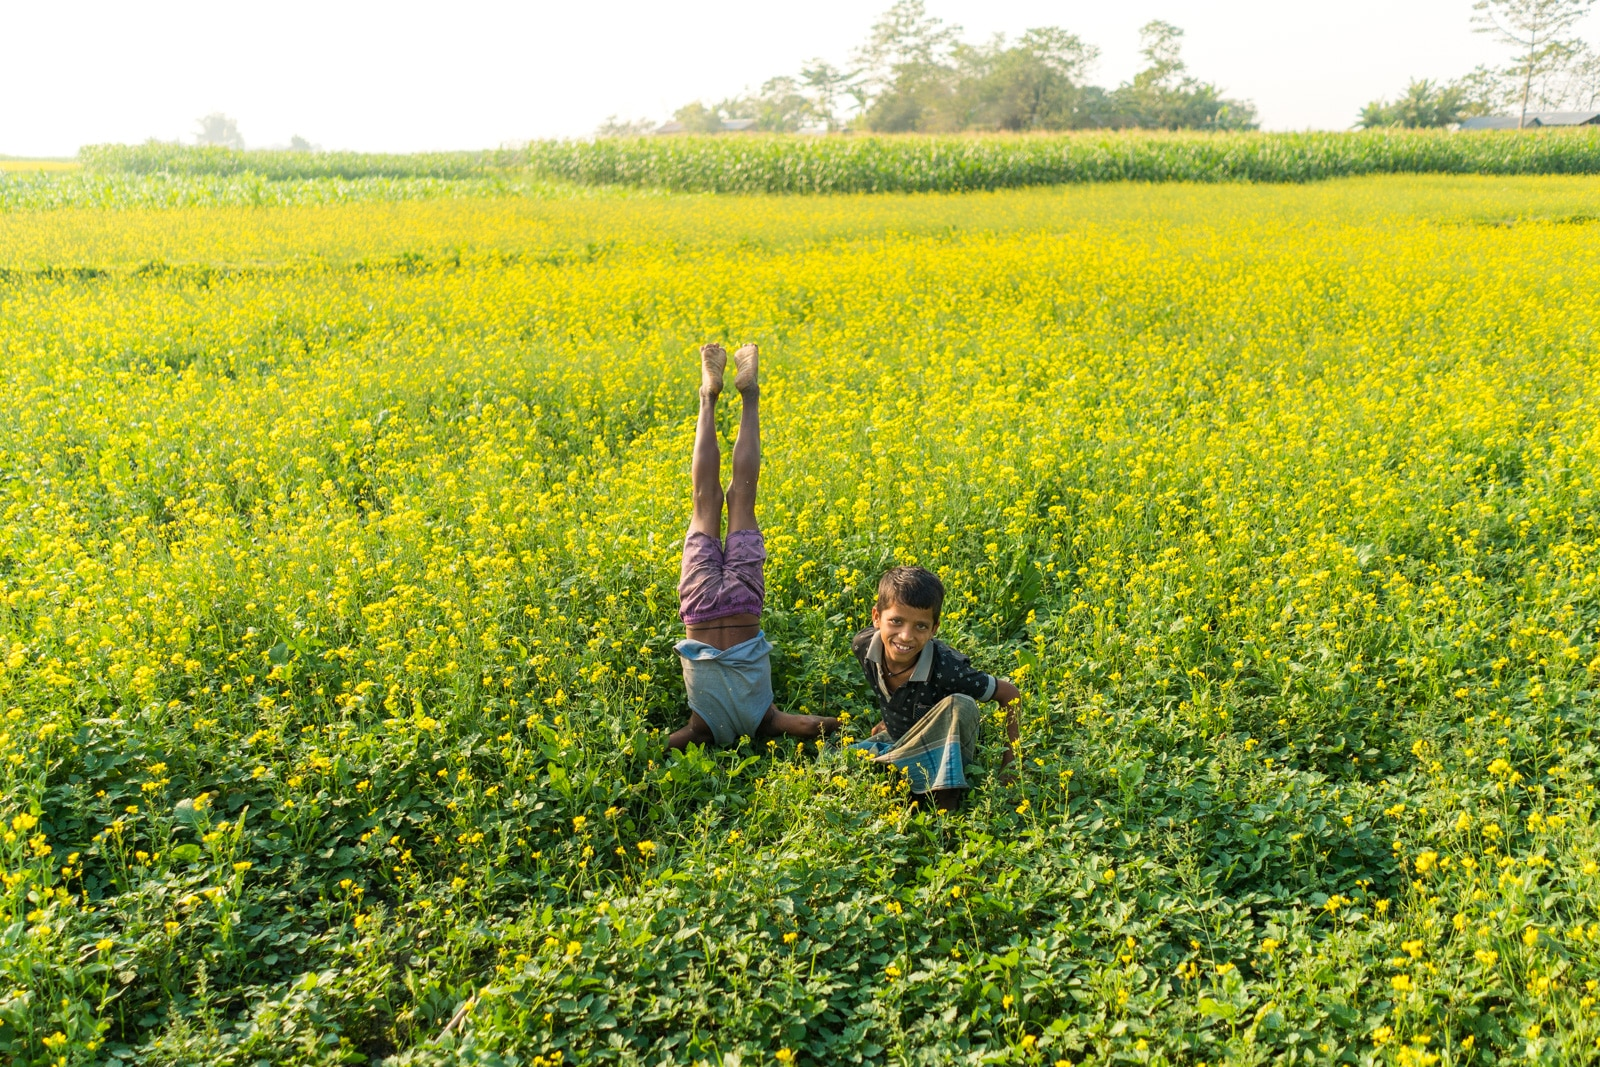 Children playing in Assam, India